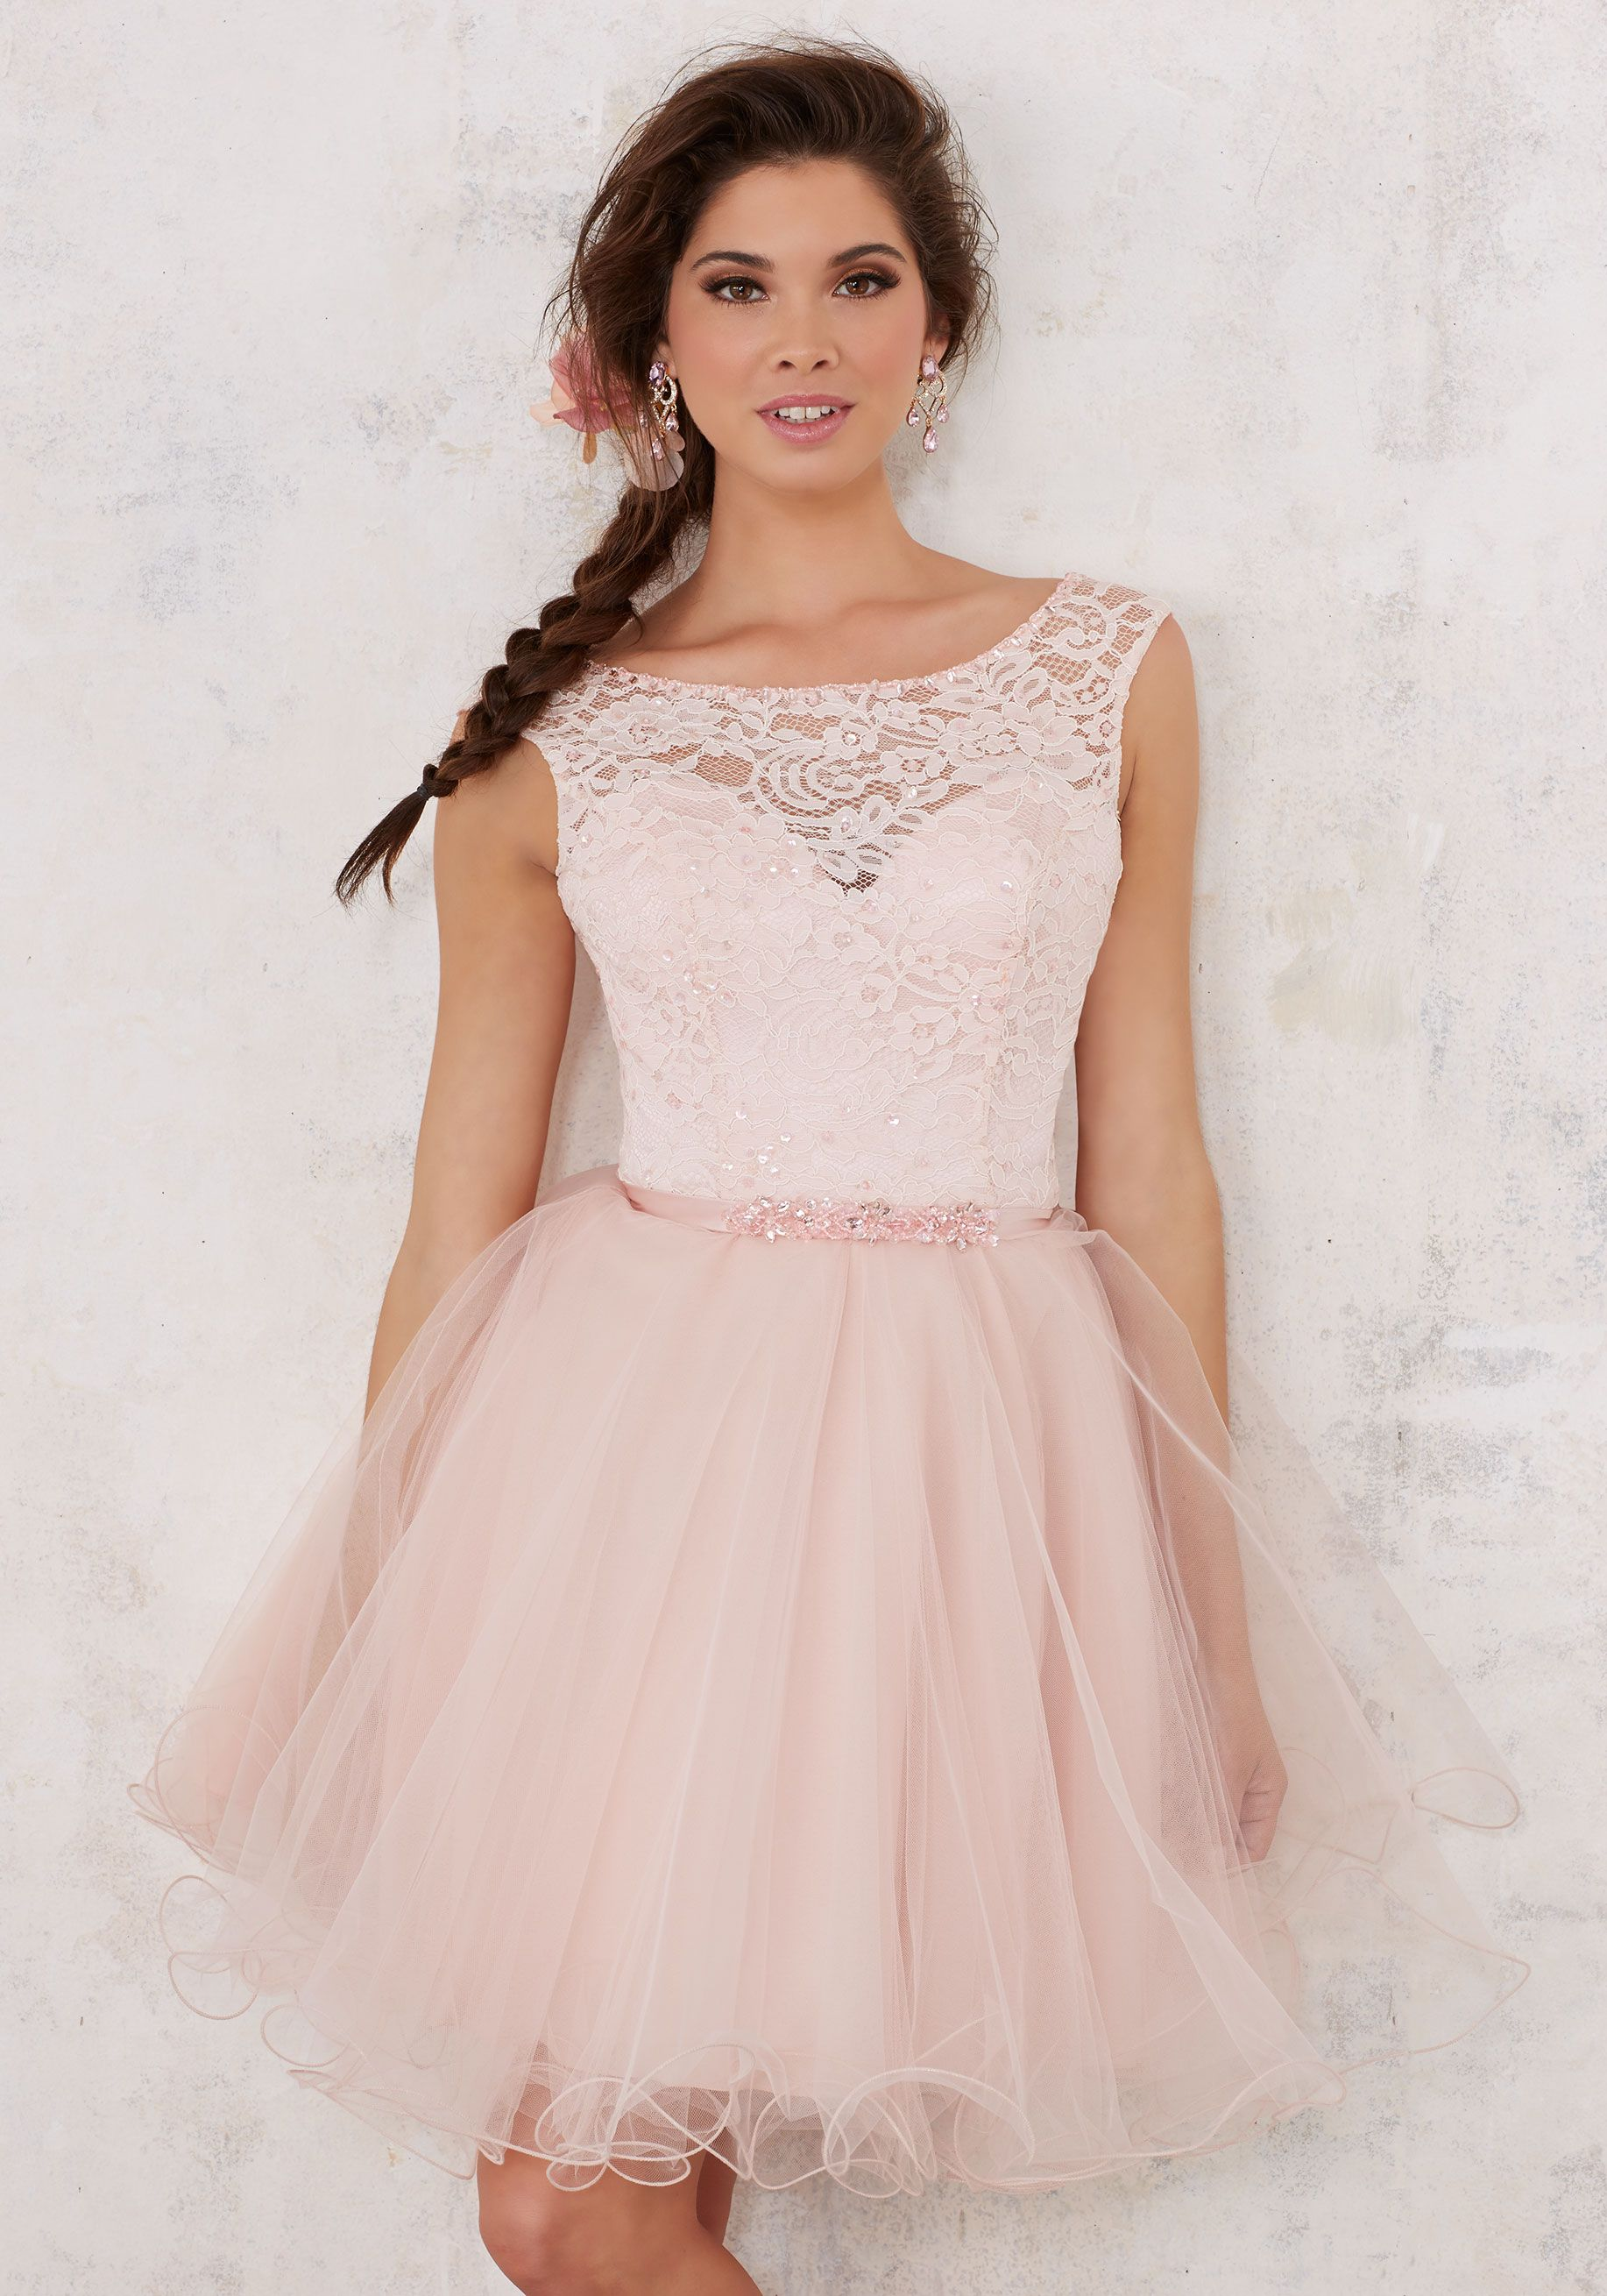 Lace and Tulle Damas Dress with Beading | Damas Style 9443 | Quinceanera Dresses by Morilee designed by Madeline Gardner. Beautiful Quinceañera Bridesmaids Dress Featuring a Lace Bodice and Full Tulle Skirt.